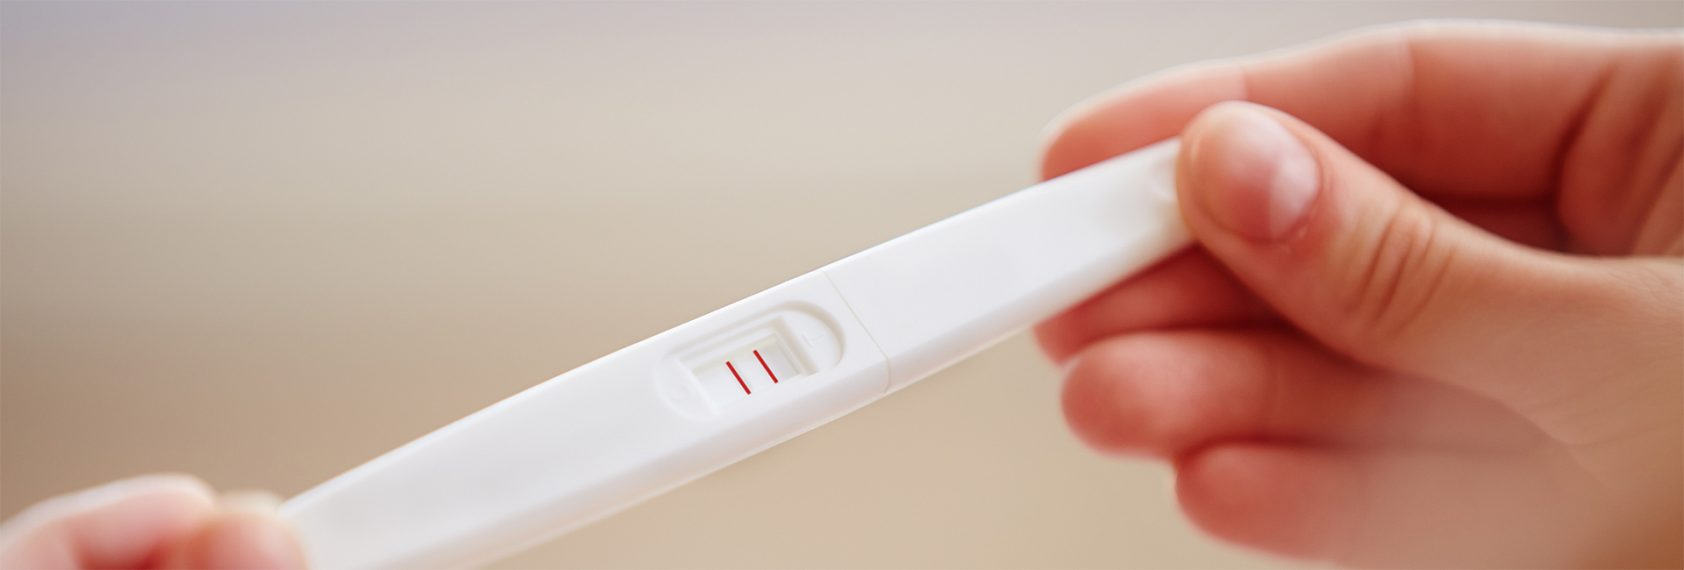 fertilys clinique fertilite Fecondation in vitro insemination artificielle test grossesse